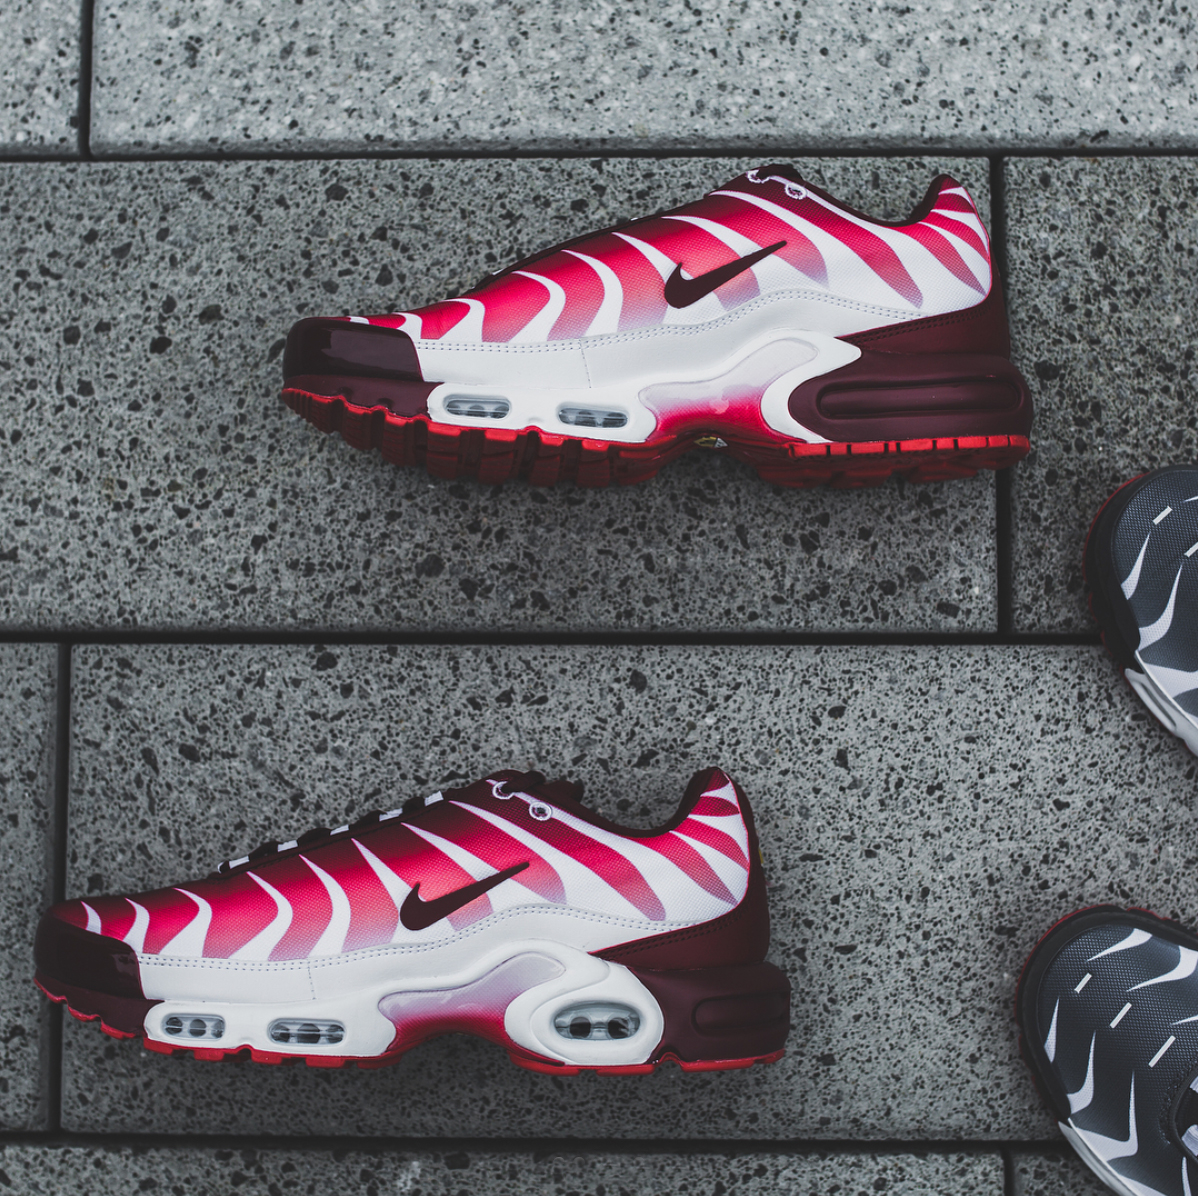 Nike Air Max Plus Before and After the Bite Sneakers